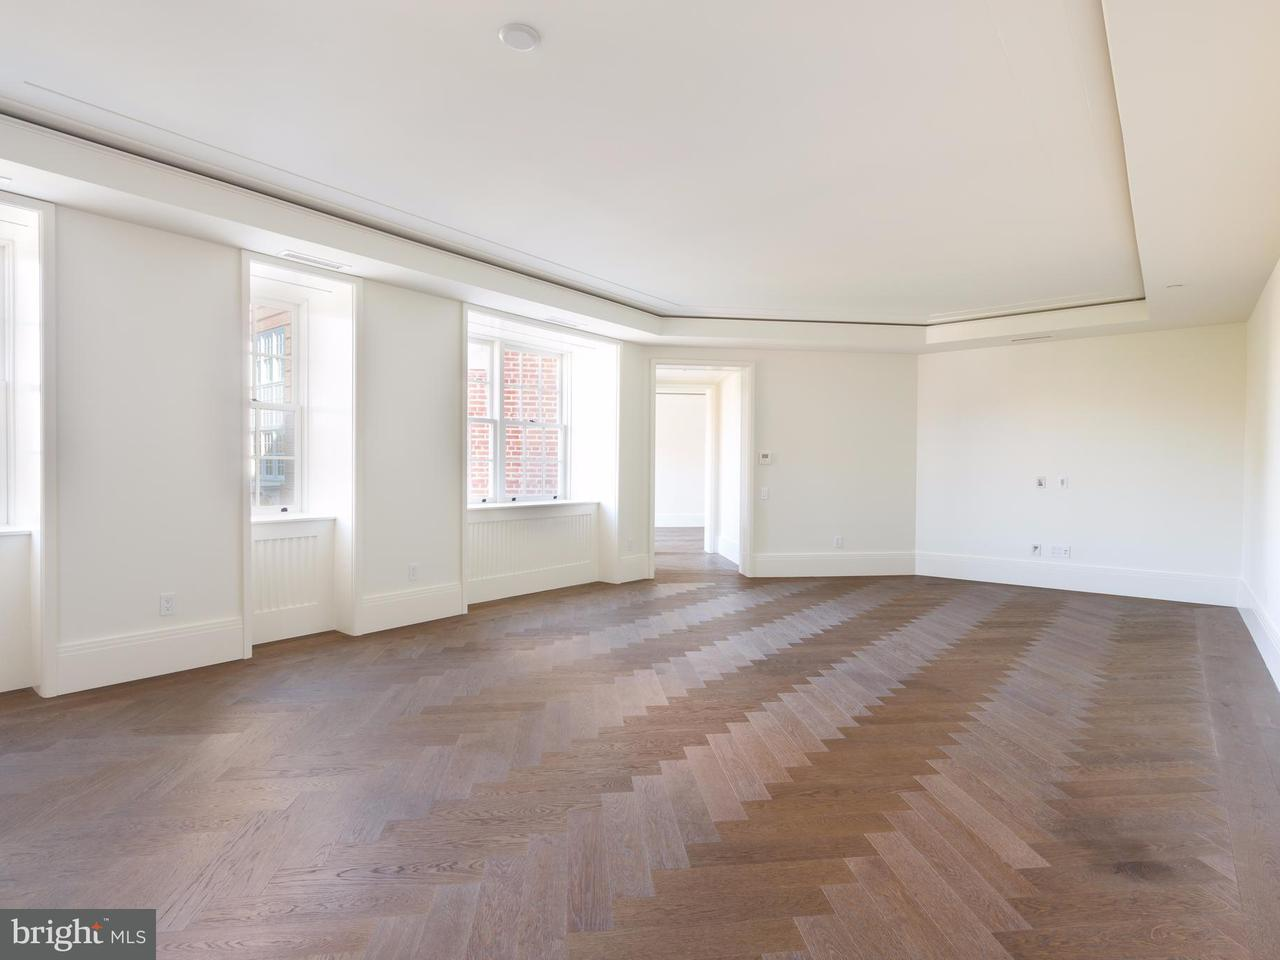 Additional photo for property listing at 2660 Connecticut Ave Nw #5b 2660 Connecticut Ave Nw #5b Washington, District Of Columbia 20008 Verenigde Staten